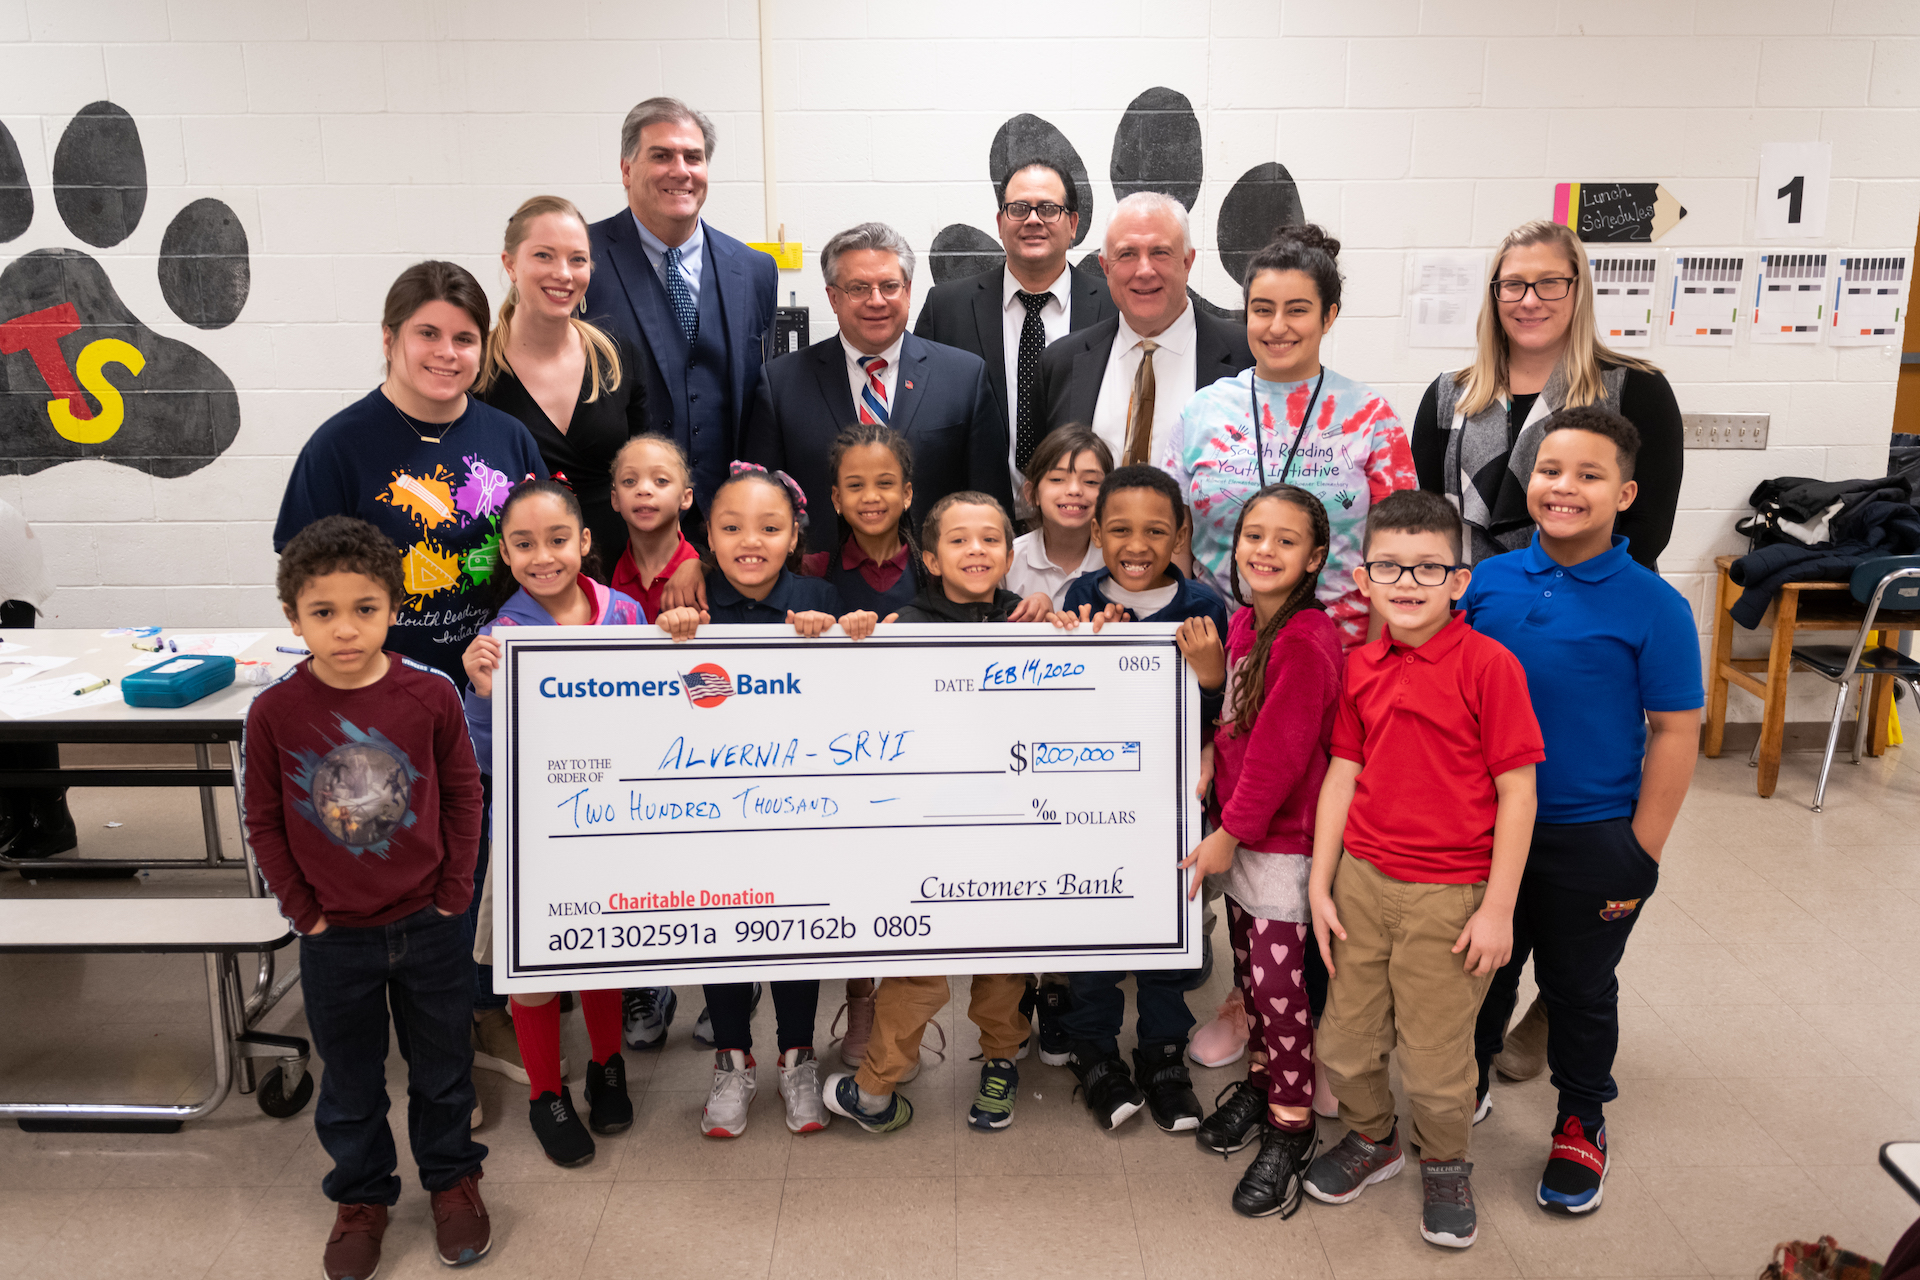 Customers Bank Check Presentation South Reading Youth Initiative Tyson Schoener Elementary